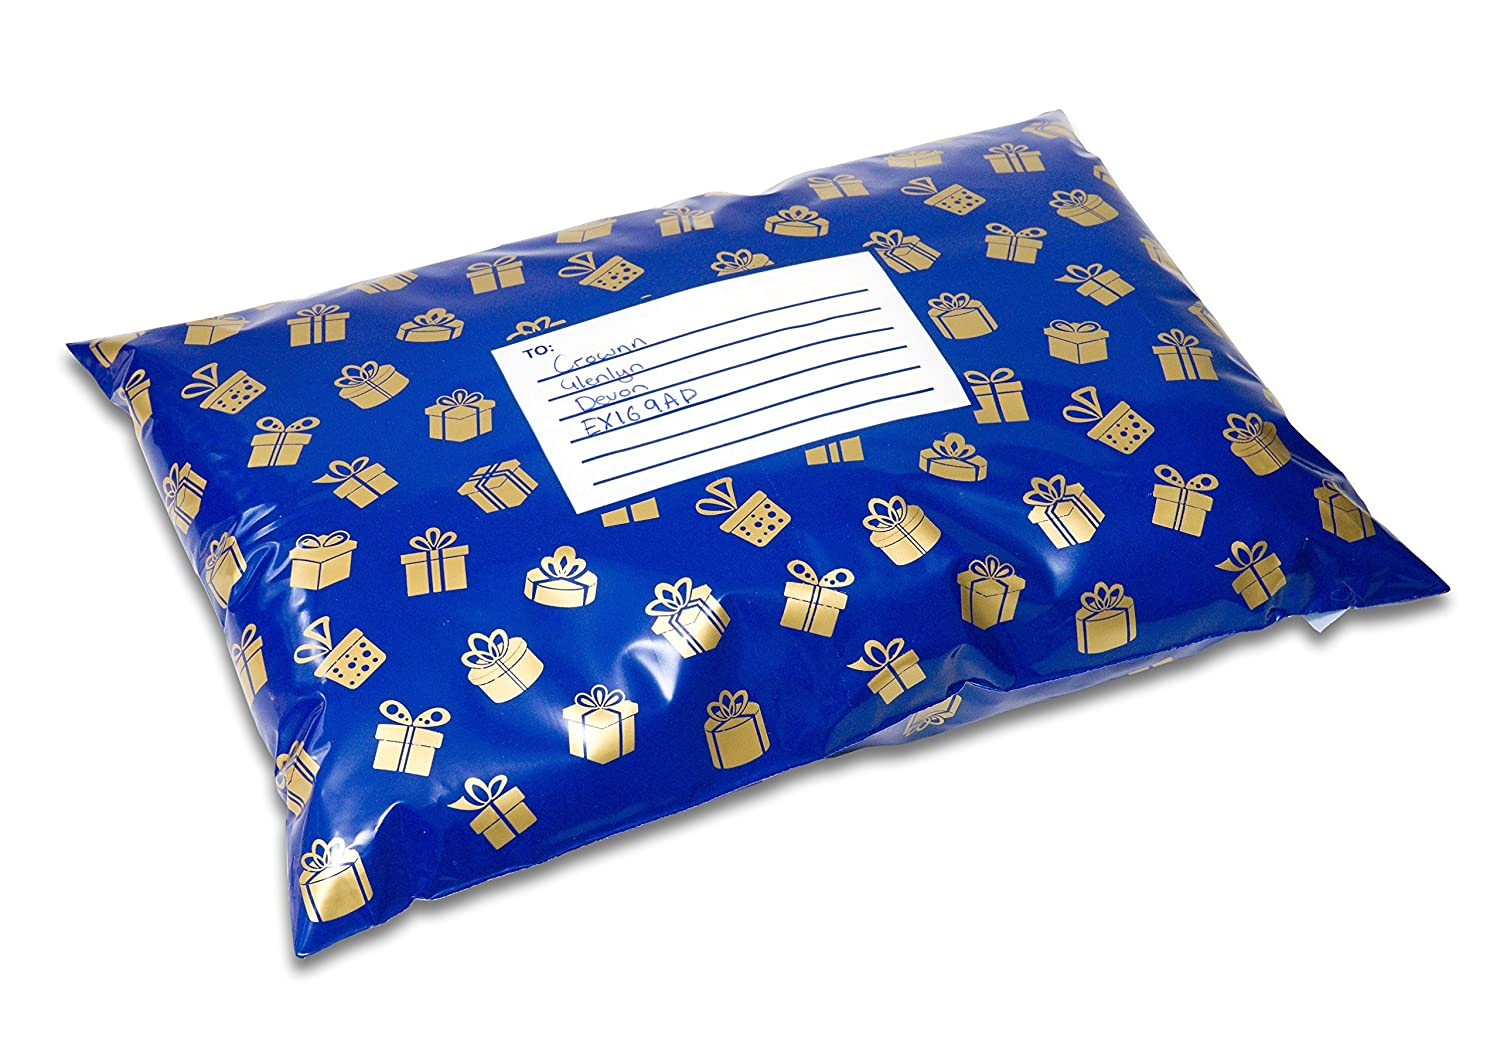 e0814846aabc The Original Funky Mailing Bag Best Postal Sacks By The Original Funky  Mailings Bags-Perfect Colourful Patterned Gift Bag For Jewellery, Clothing,  ...